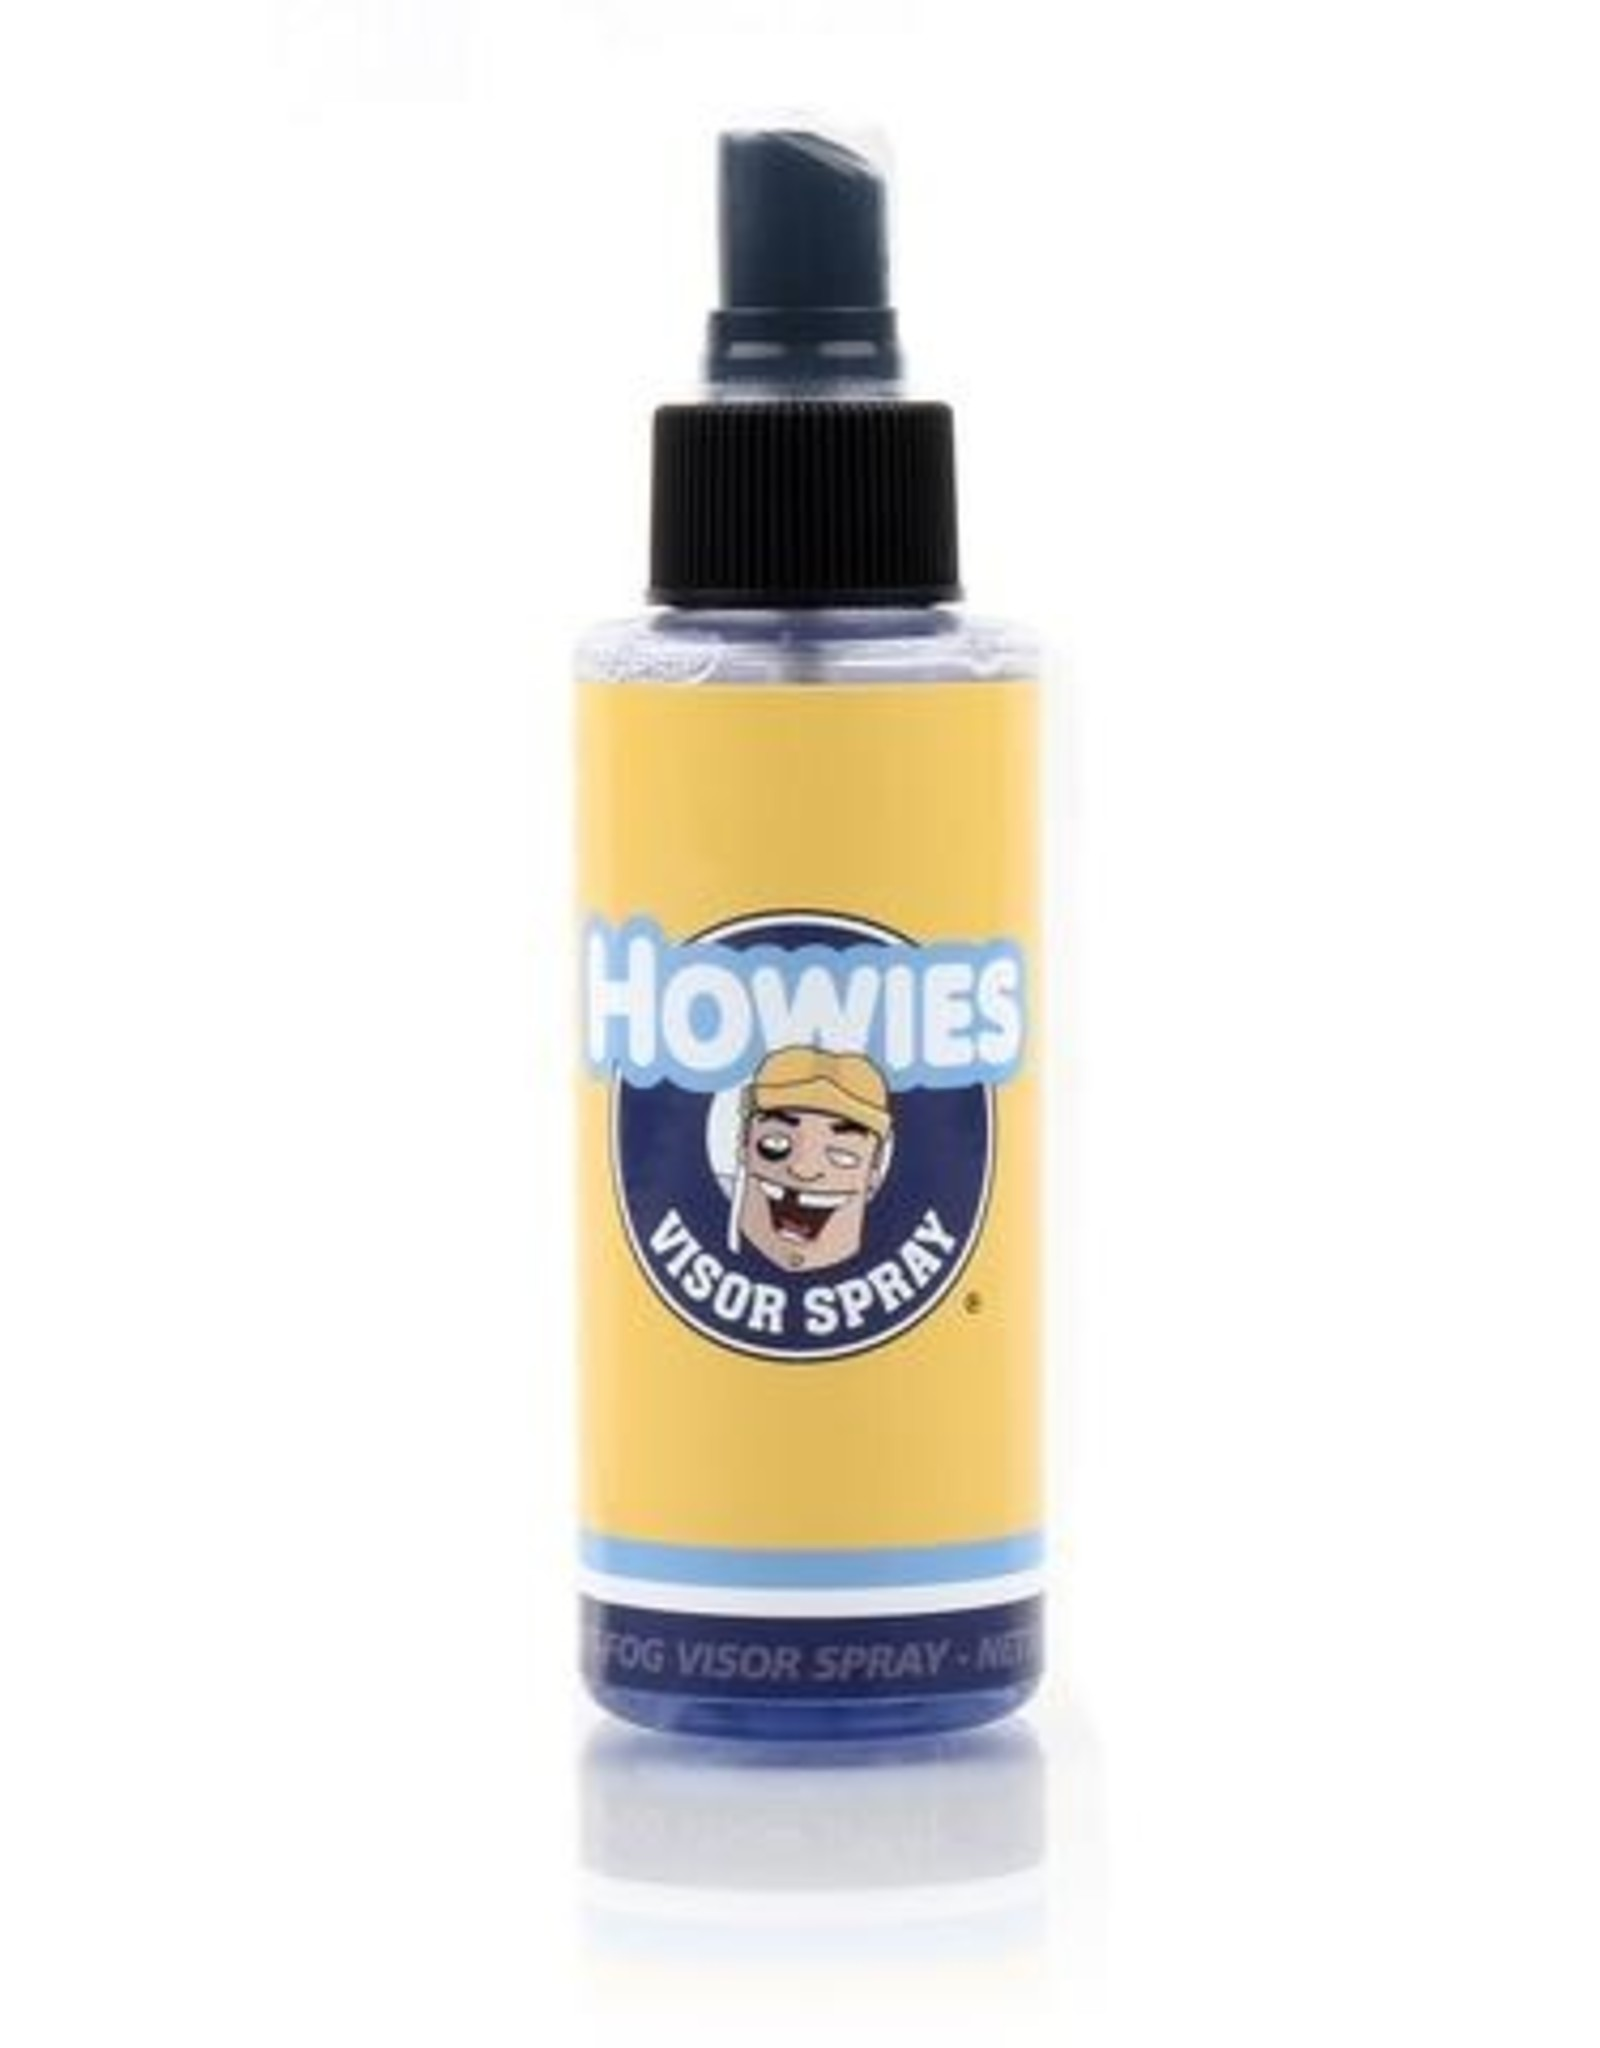 Howies Howies Anti-Fog Visor Spray